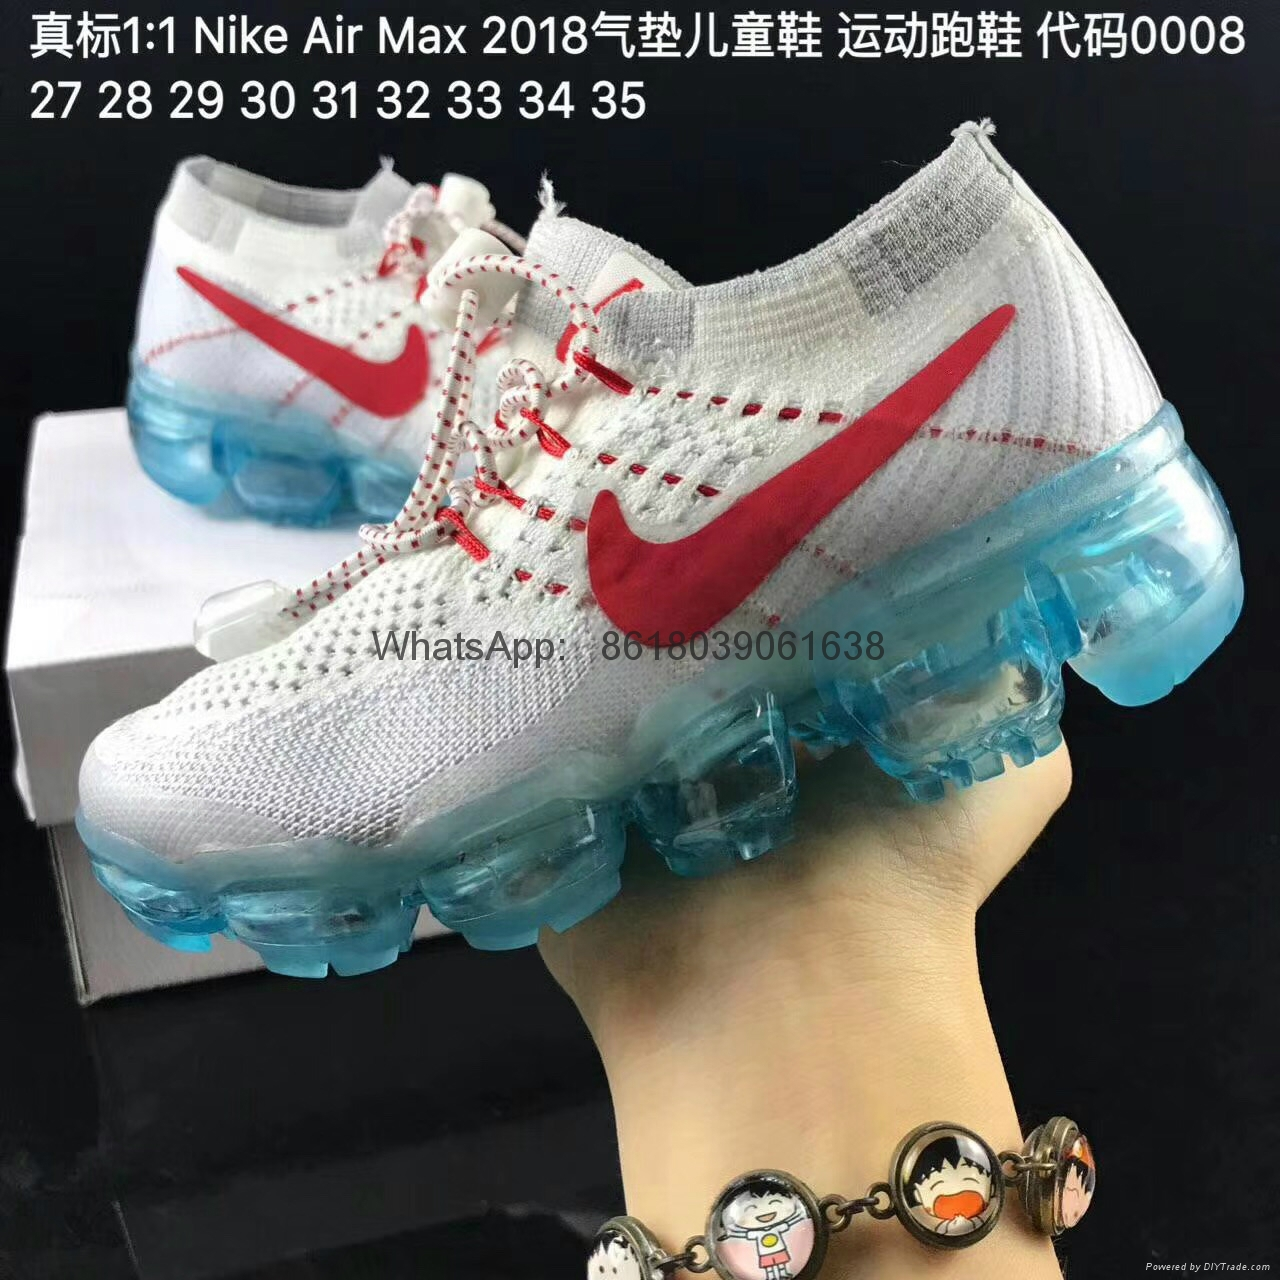 2018 kids shoes adidas kids shoes nike childs shoes new balance SKECHERS shoes 11